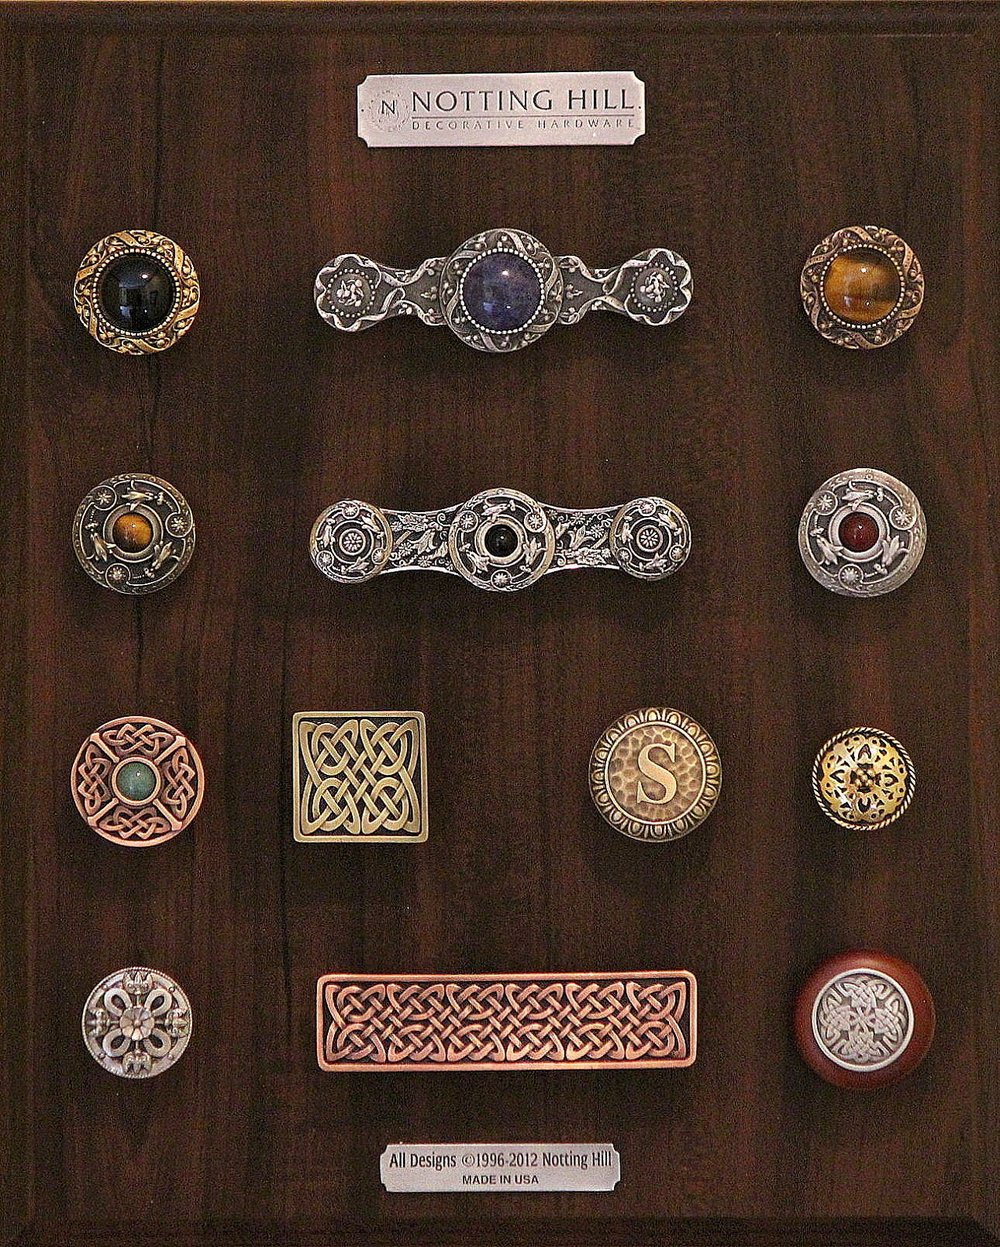 Victorian Jewel Knobs (2); Victorian Jewel Pull; Jeweled Lily Knob; Jeweled Lily Pull; Jeweled Lily Knob with Jeweled Lily Back Plate; Celtic Jewel Knob; Celtic Isles Knob; Moroccan Jewel Knob; Initial Knob; Celtic Shield Knob; Celtic Isles Pull; Celtic Isles Wood Knob.